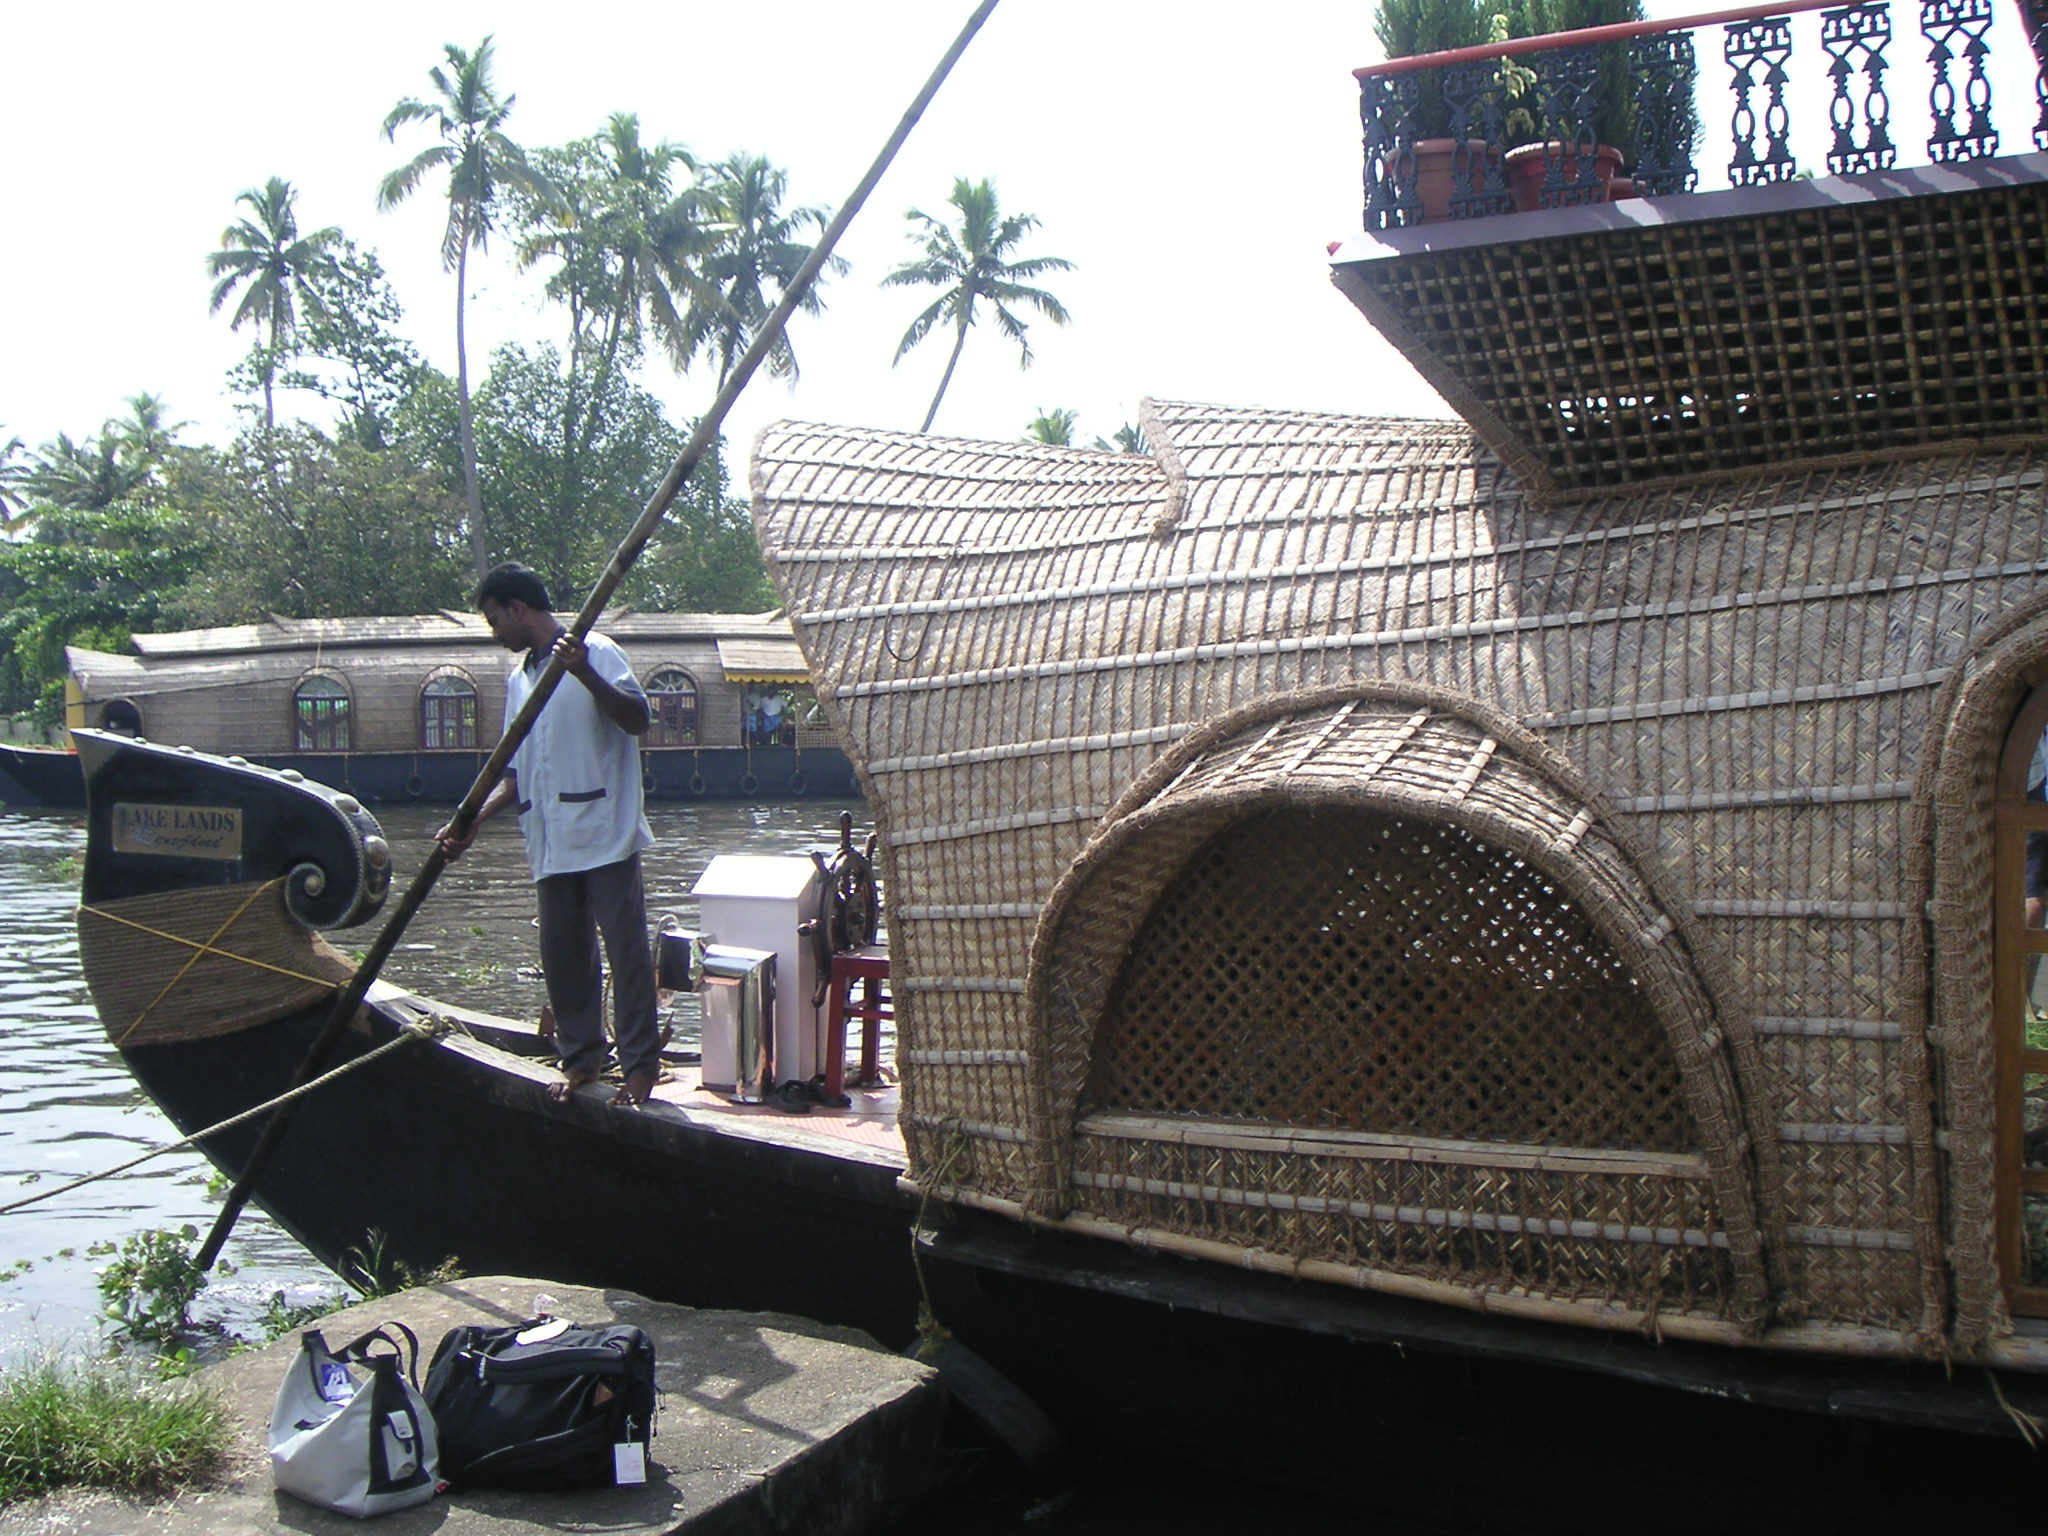 Kerala Kettuvalam (aka houseboat)